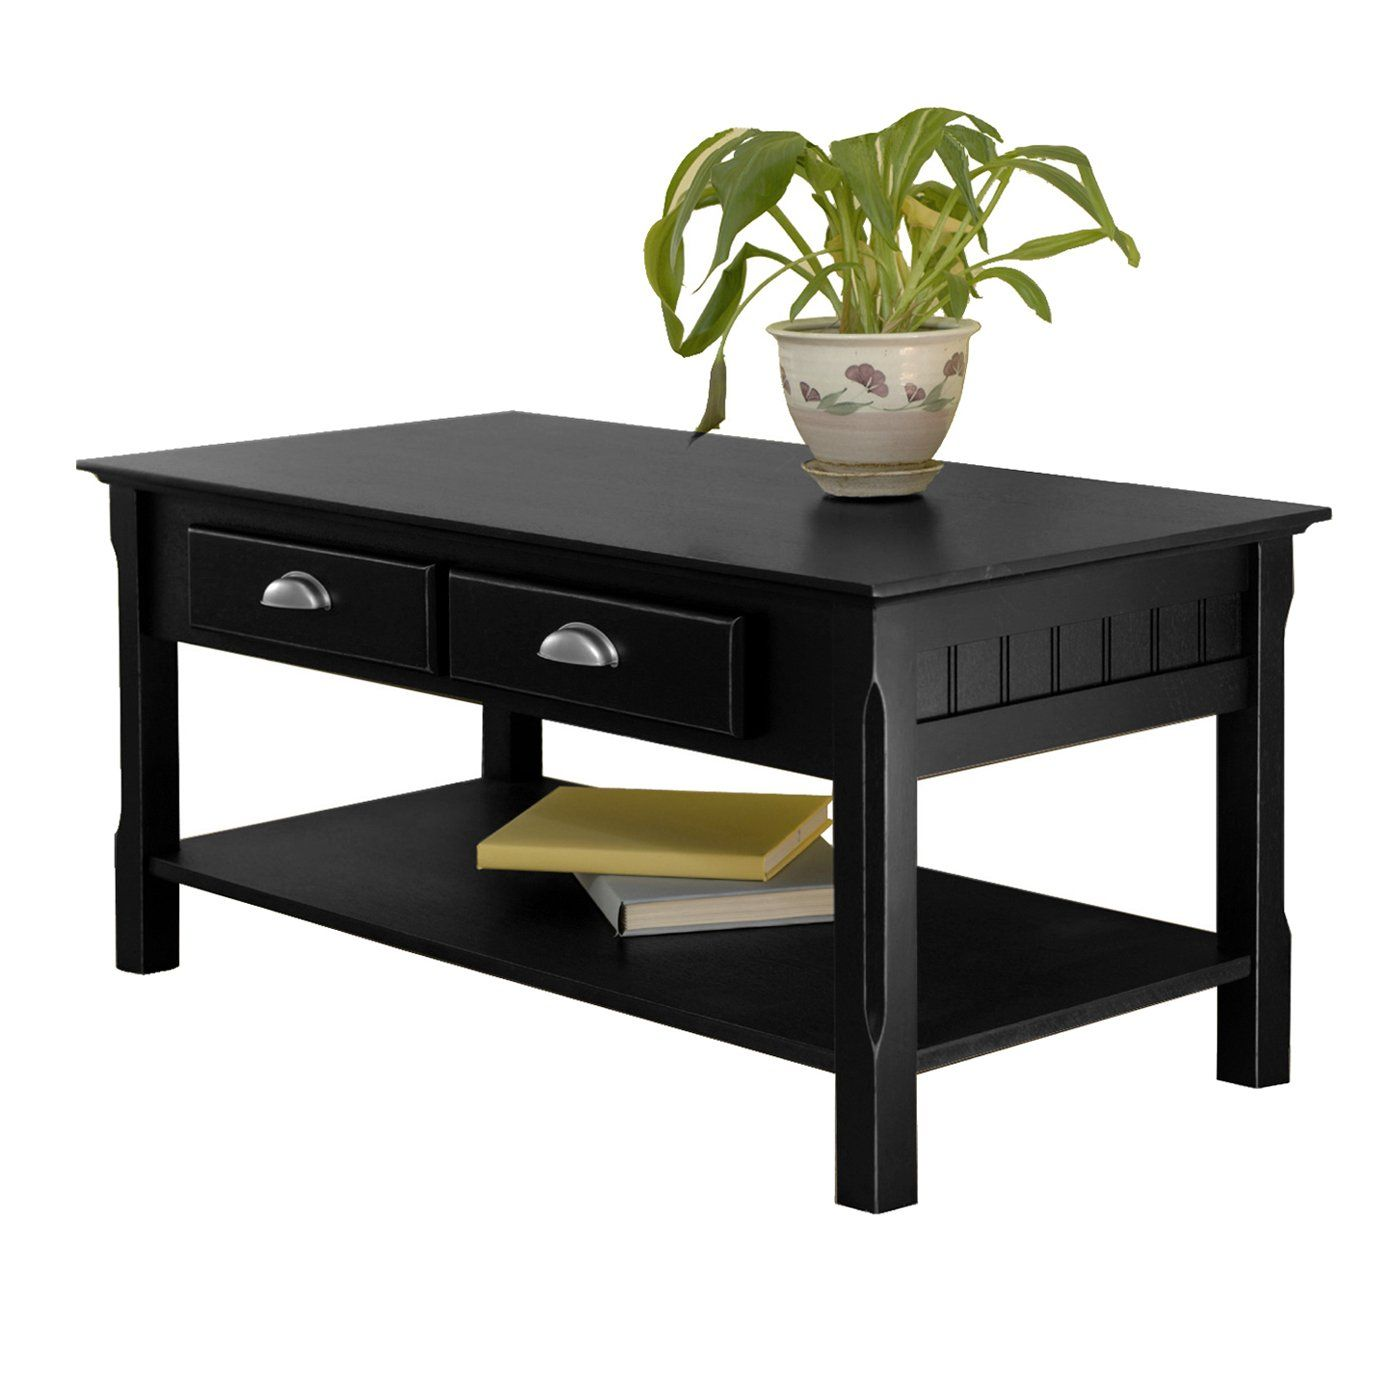 Shop Winsome Wood Timber Coffee Table at Lowe s Canada Find